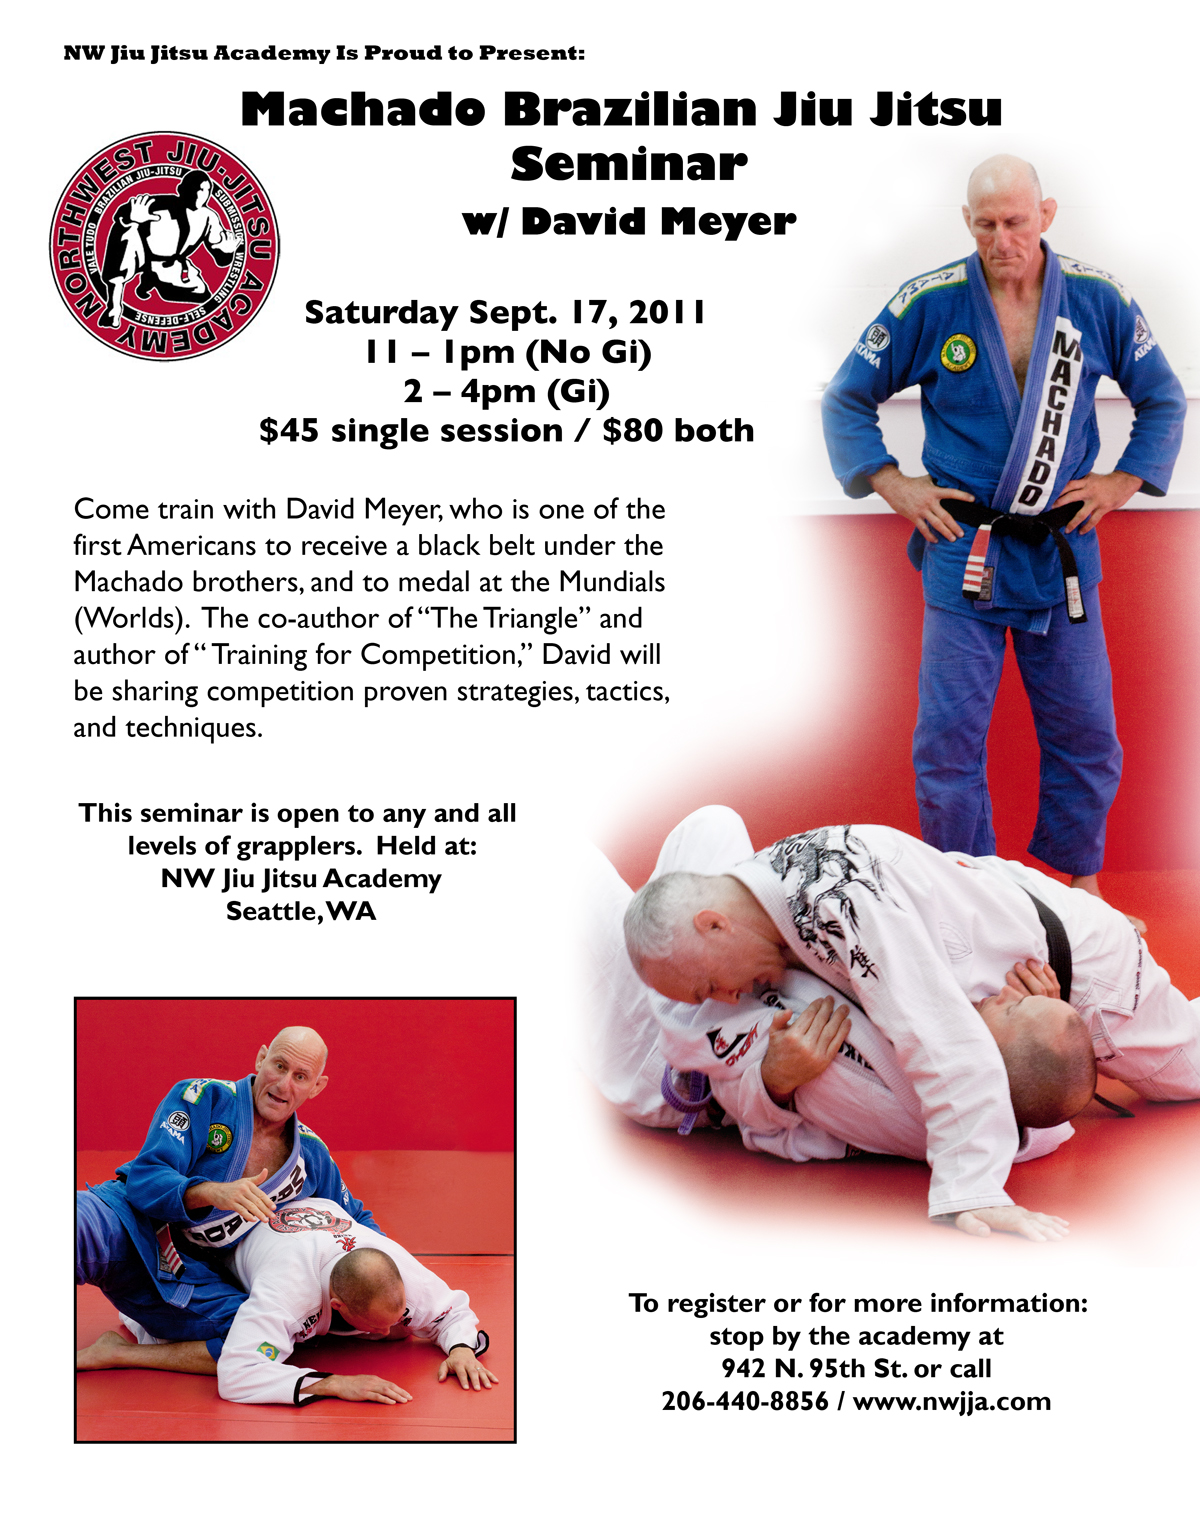 Self Defense Flyer Templates Last call on the seminar with